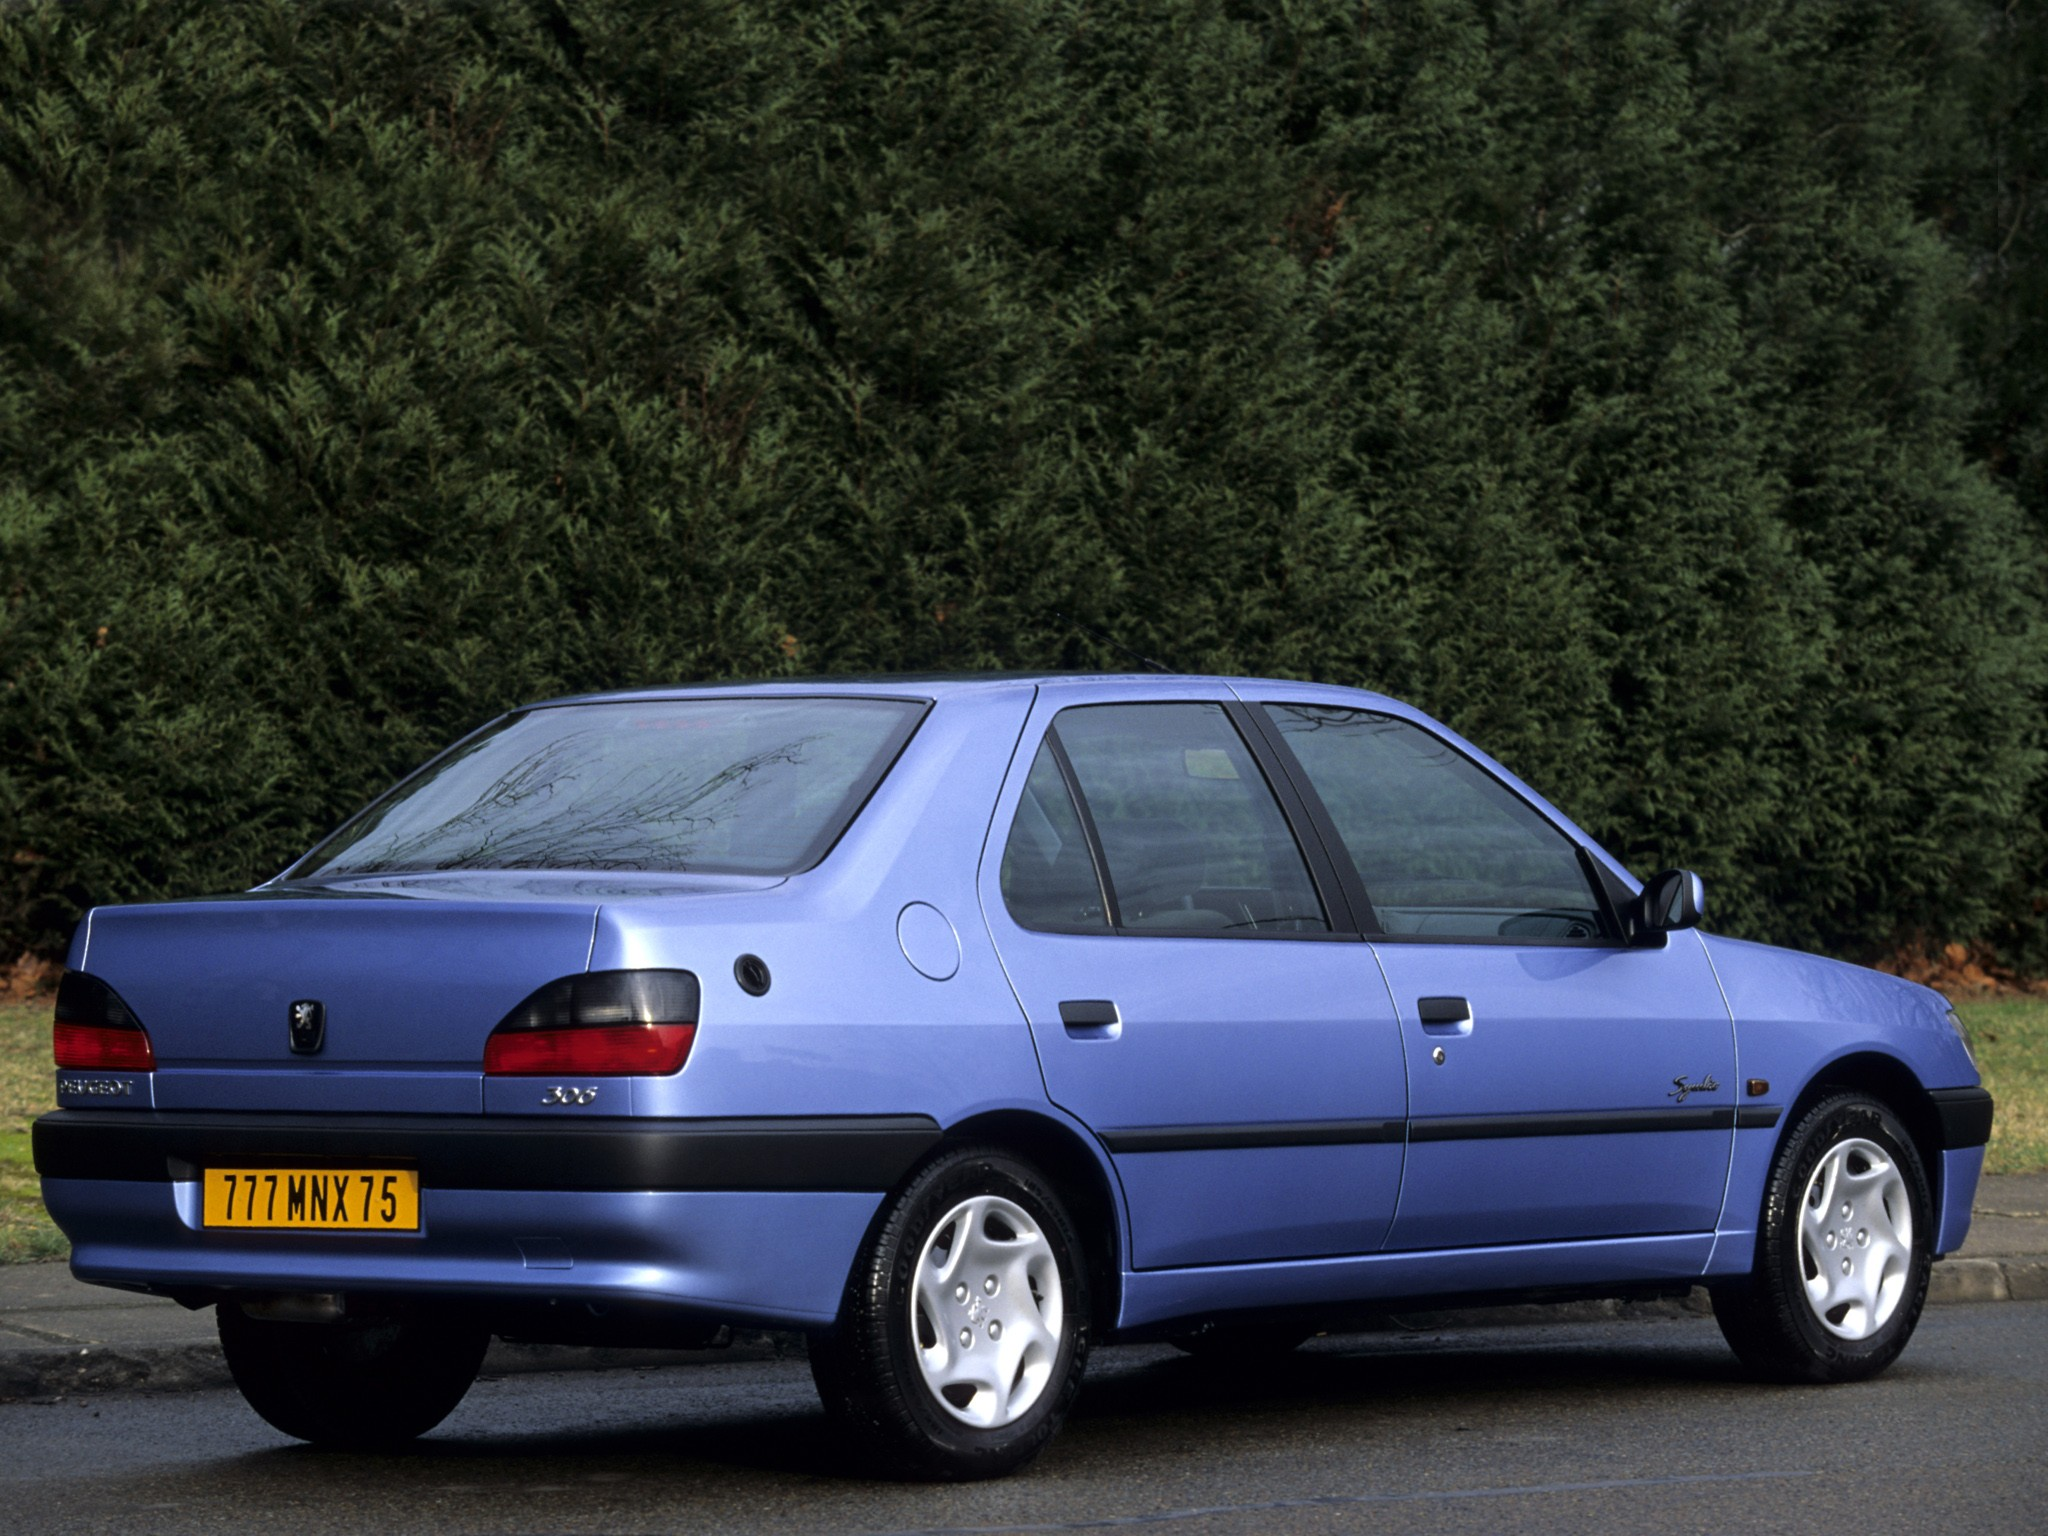 2000 Peugeot 306 Photos, Informations, Articles